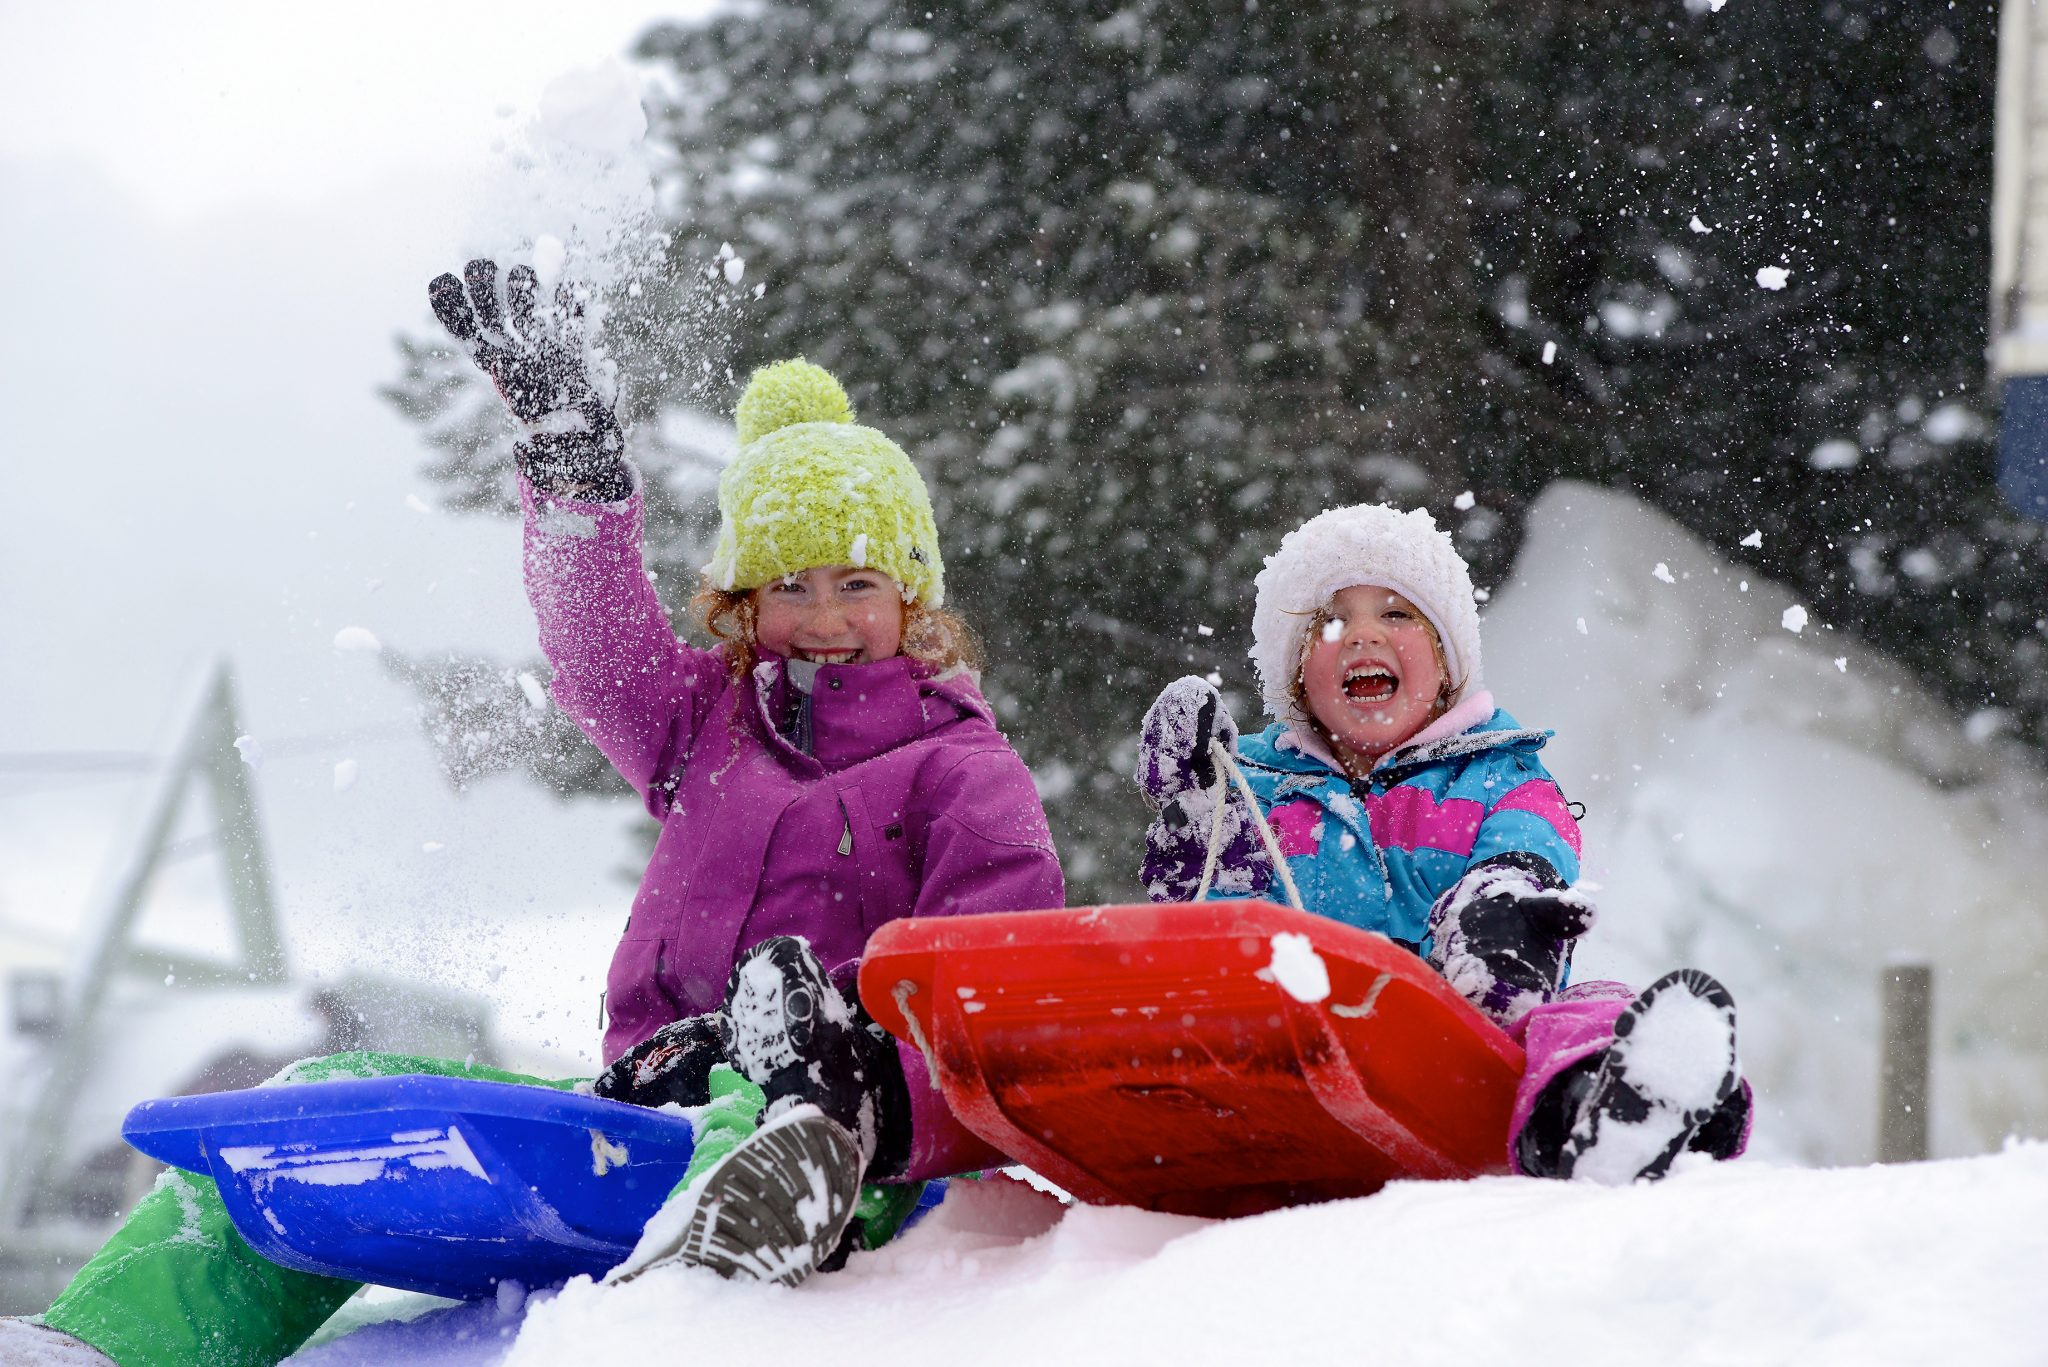 Grace Walkley 10 & Ava Moegel 5,  enjoy the 20cm+ of new snow at Falls Creek today. Snow was reported to fall as low as 300m above sea level. Temperatures dipped to minus 7C. Skiers enjoyed the best powder snow conditions of the record breaking 2014 snow season.